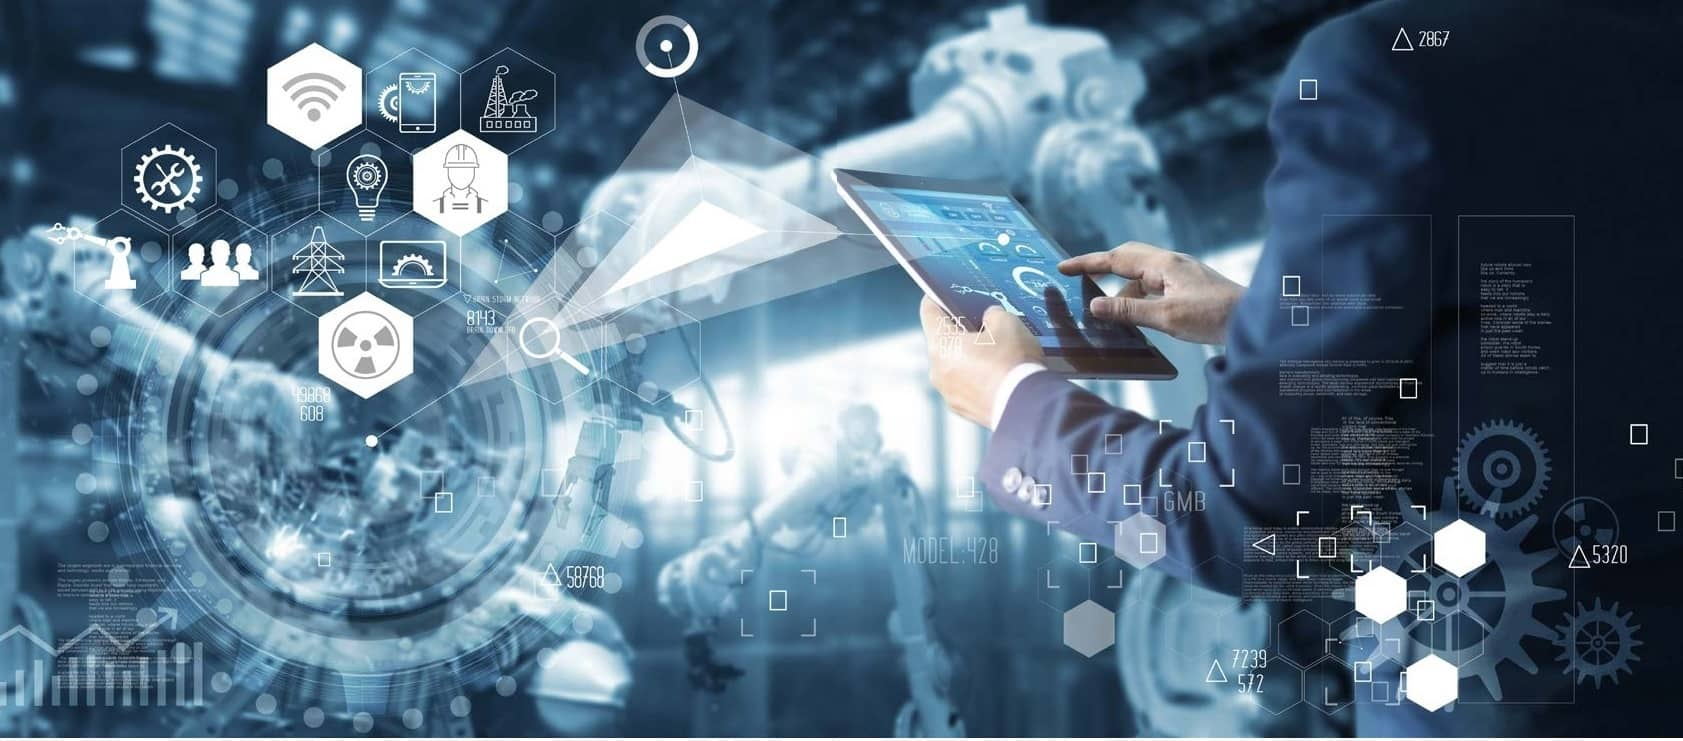 KEEPING PACE WITH THE SPEED OF INDUSTRY 4.0